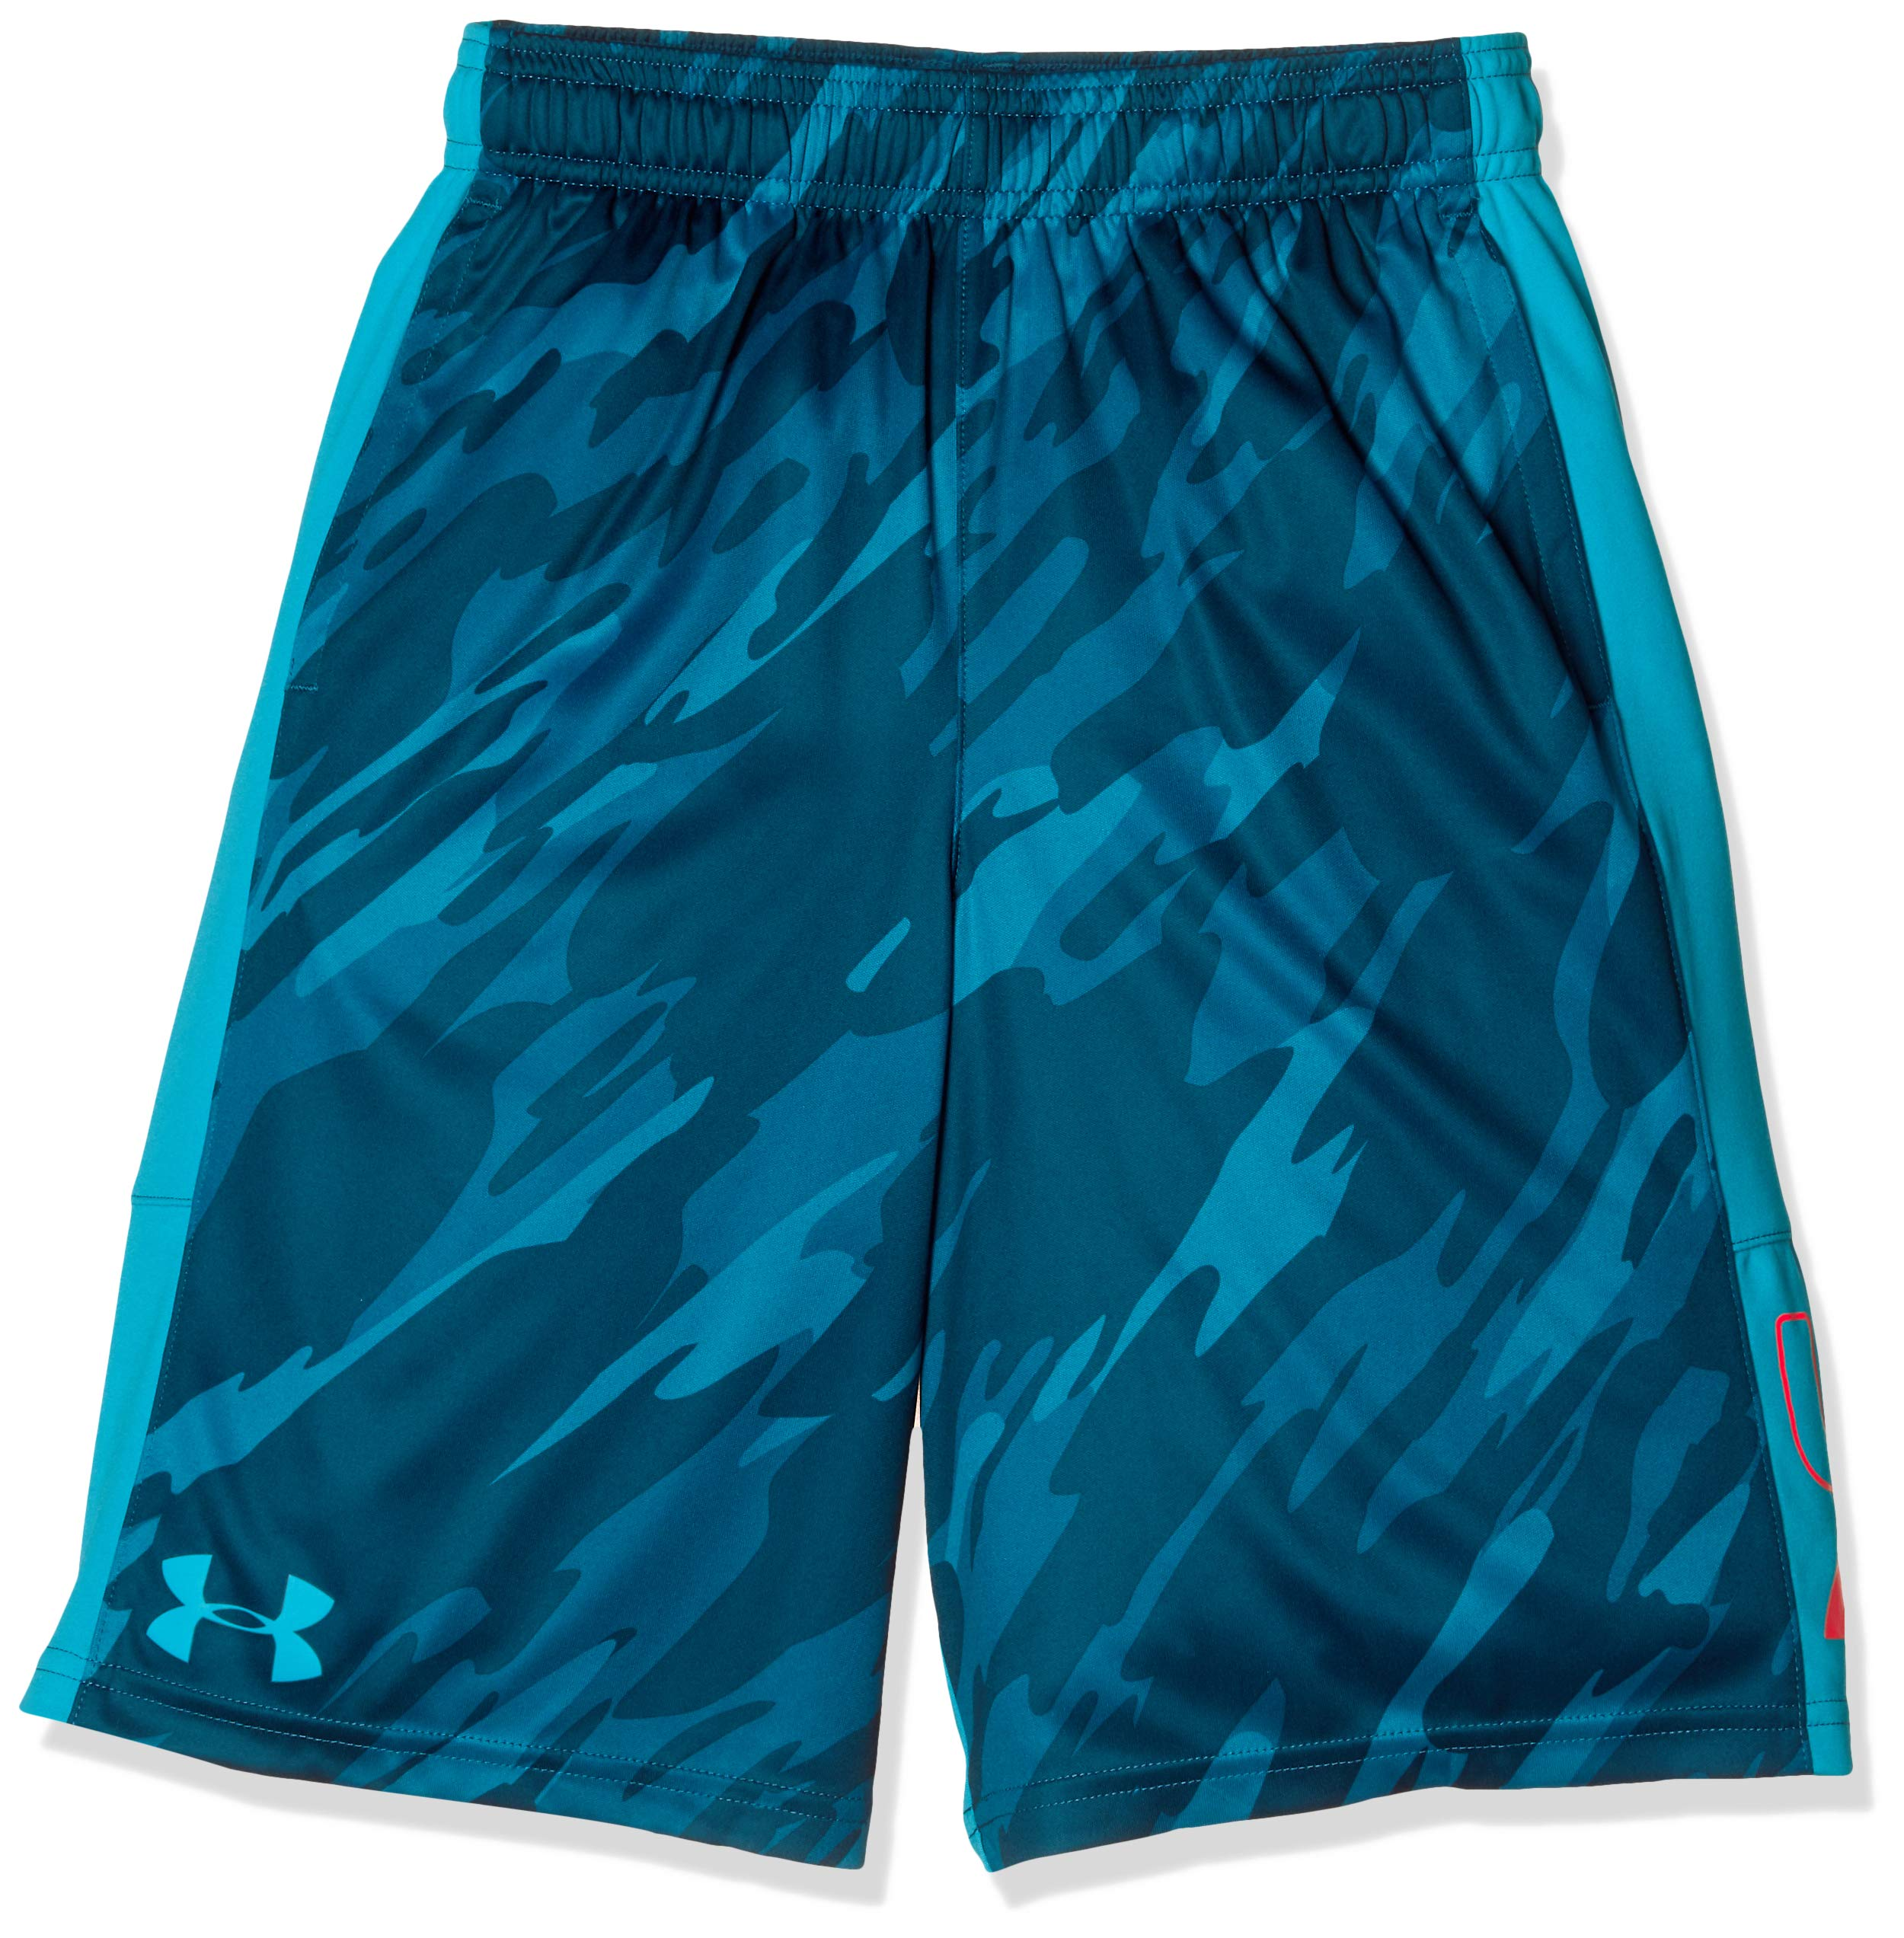 Under Armour Boys' Instinct Printed Shorts,  Deceit (439)/Deceit  Youth X-Small